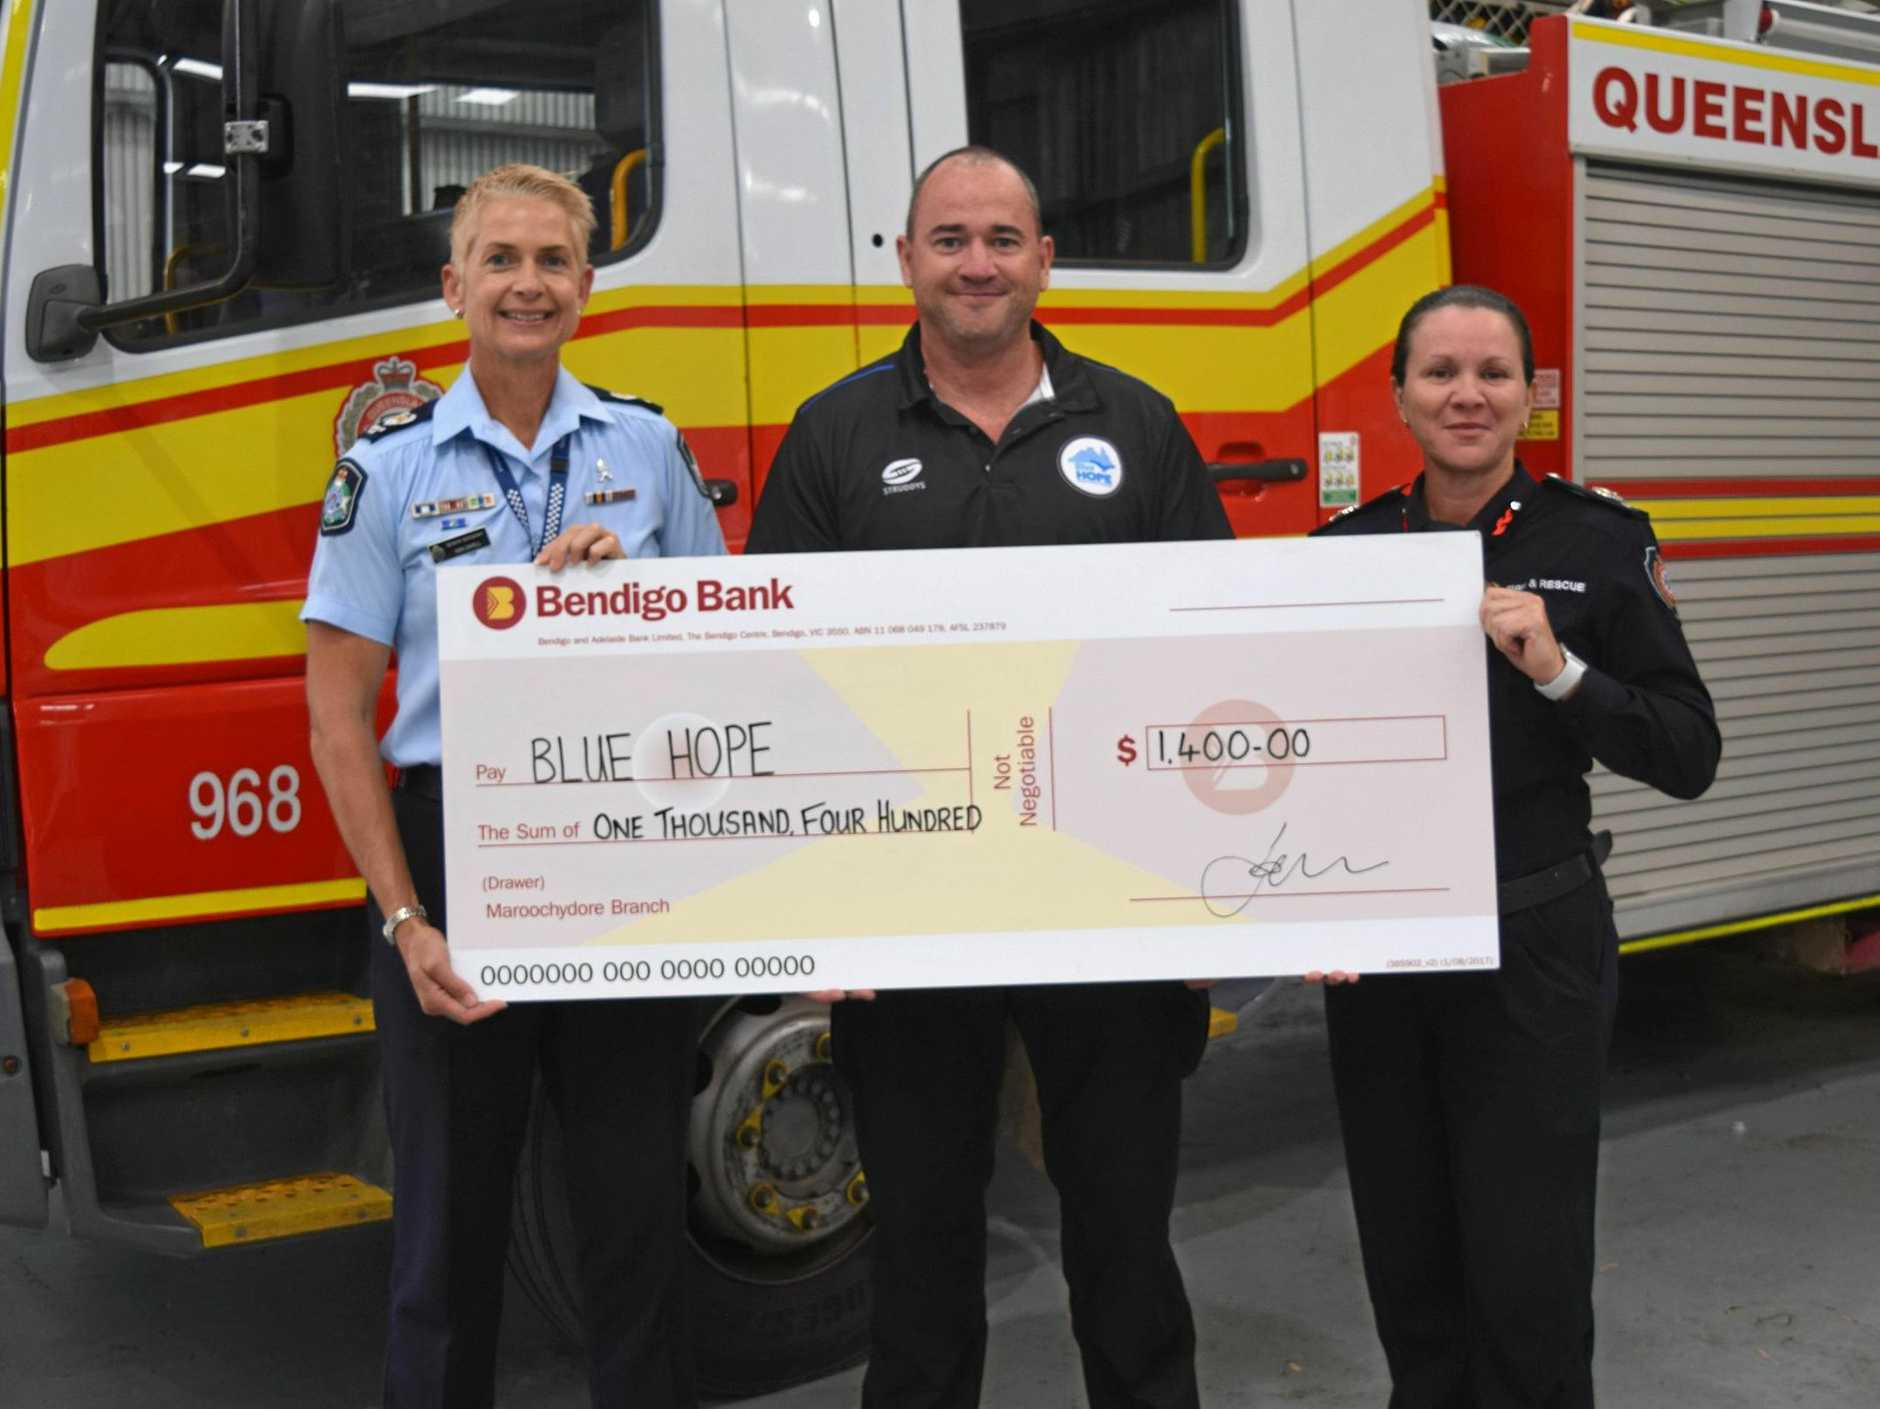 SIGNED, SEALED, DELIVERED: Senior Sergeant Kim Cavell and QFES Acting Assistant Commissioner Michelle Young present Andrew Ayres with a $1400 cheque.